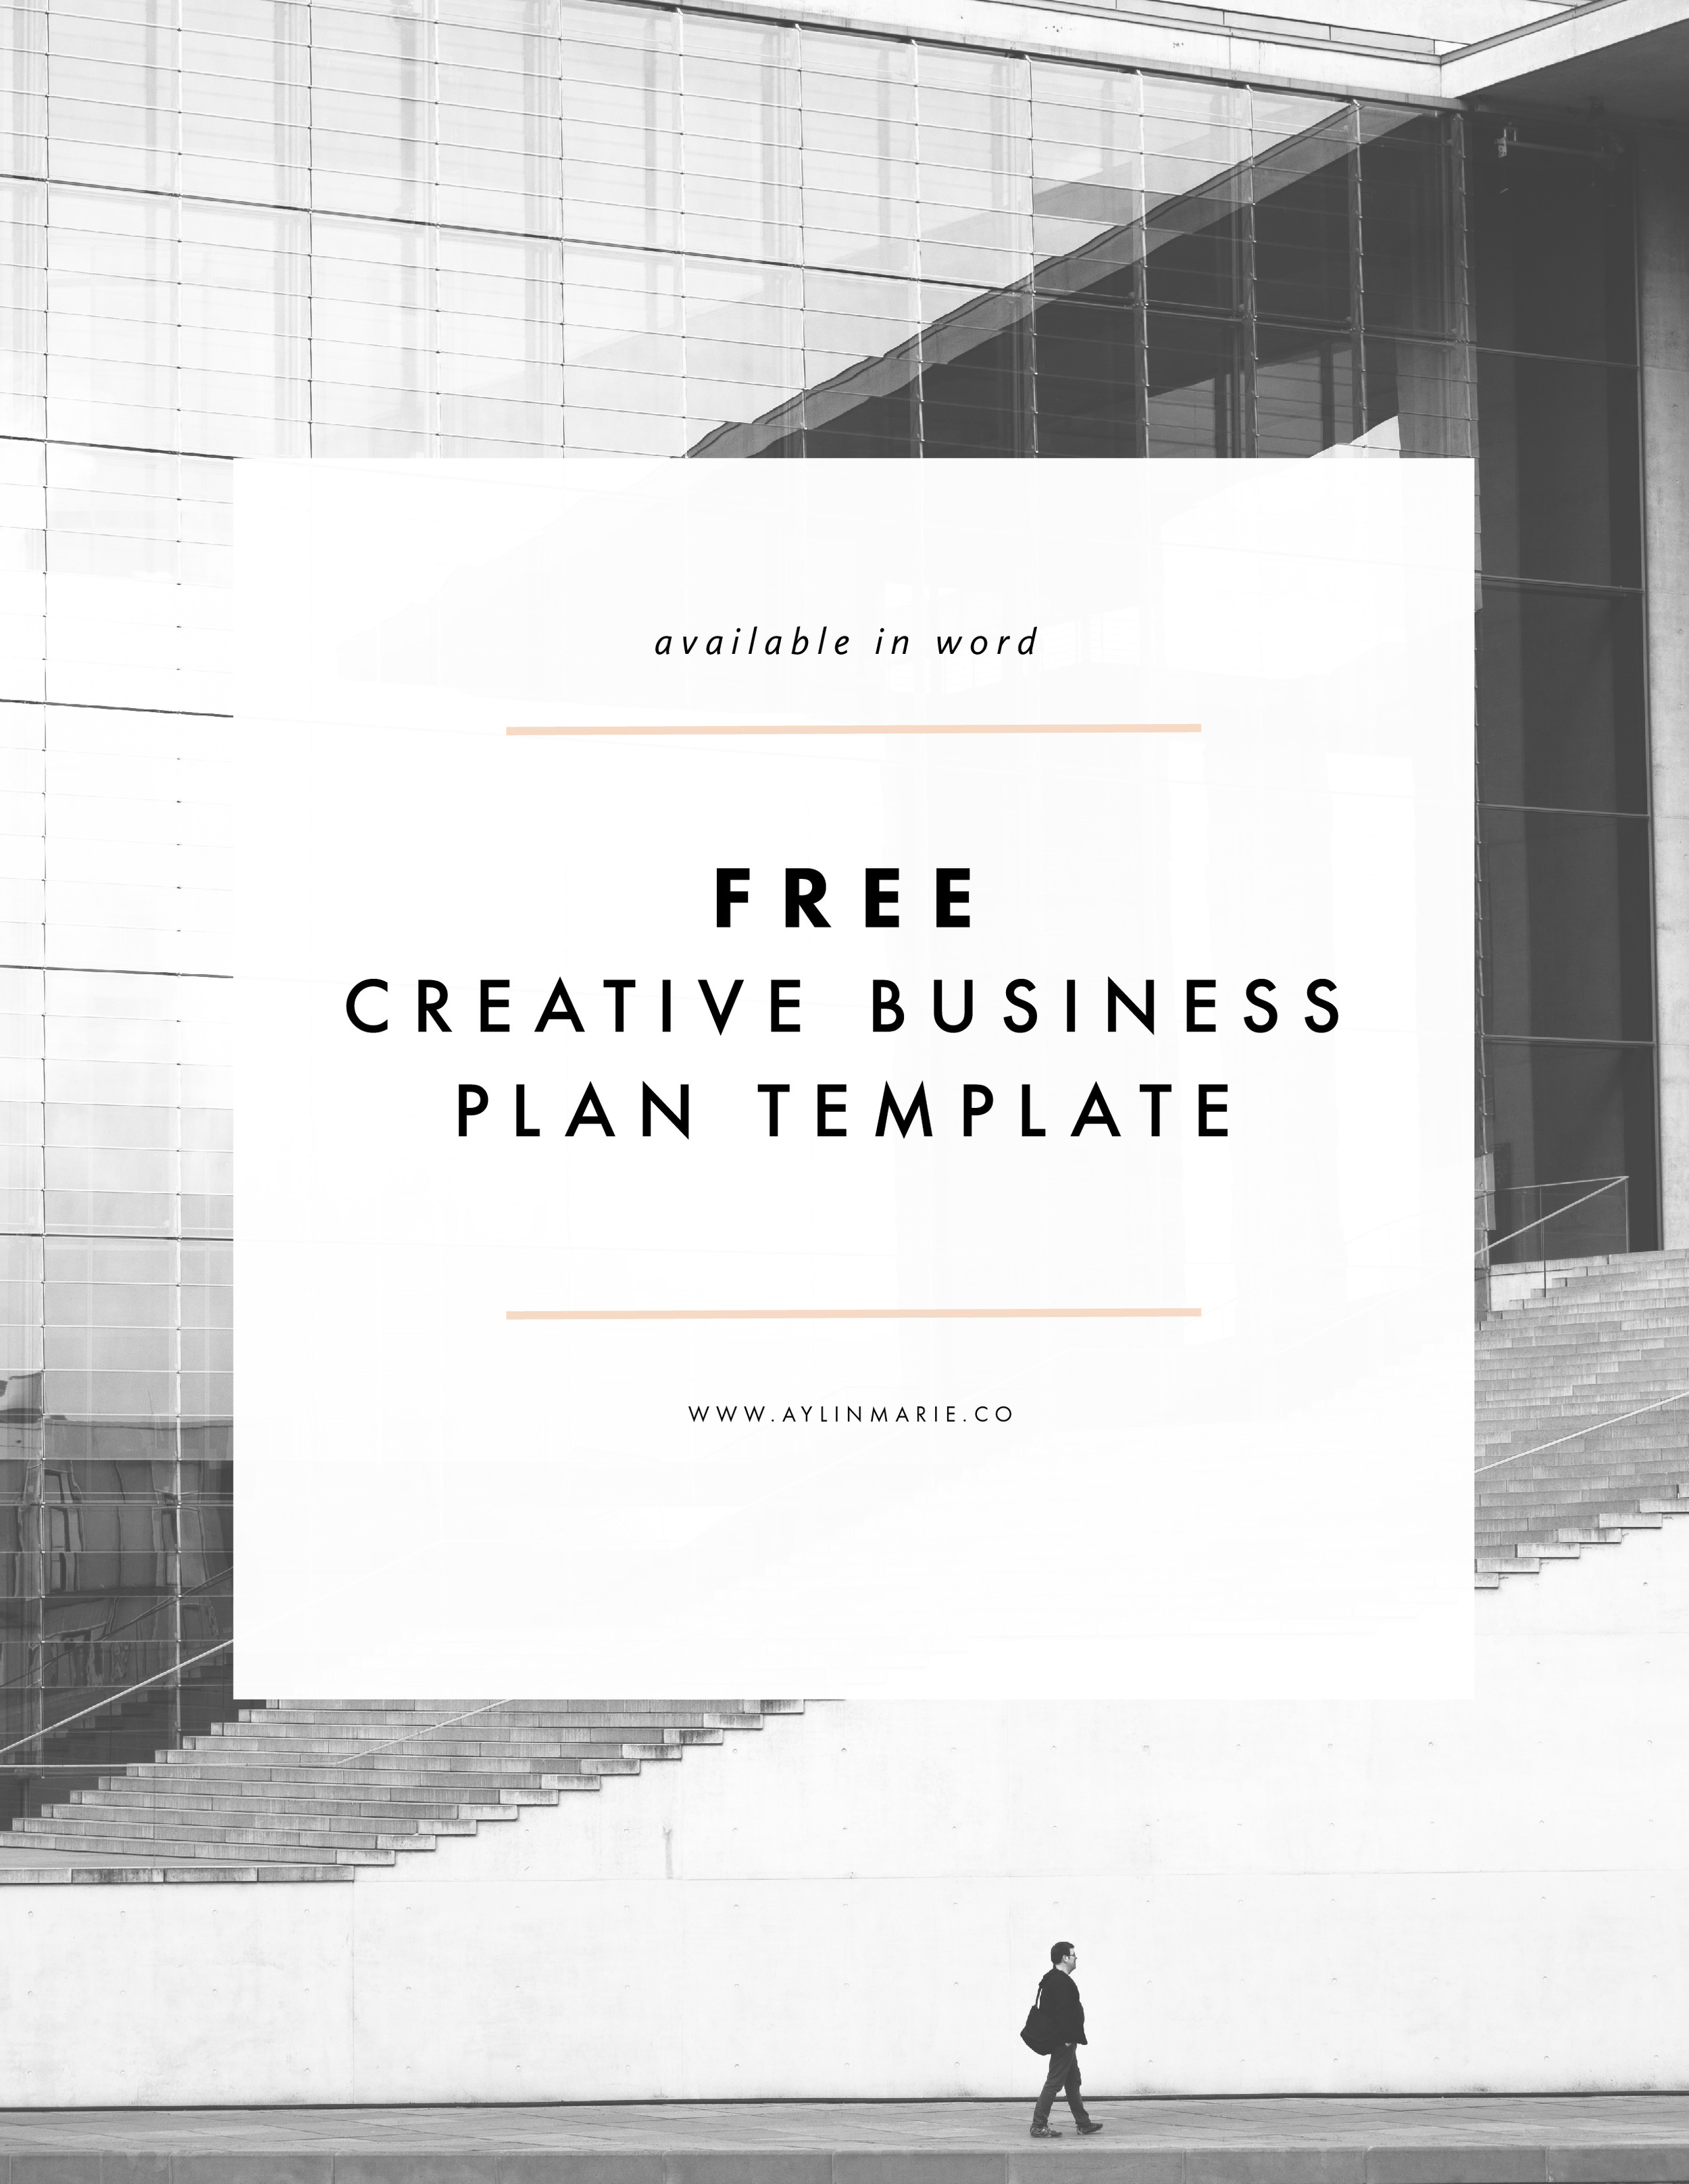 Freebie creative business plan template aylin marie freebie creative business plan template flashek